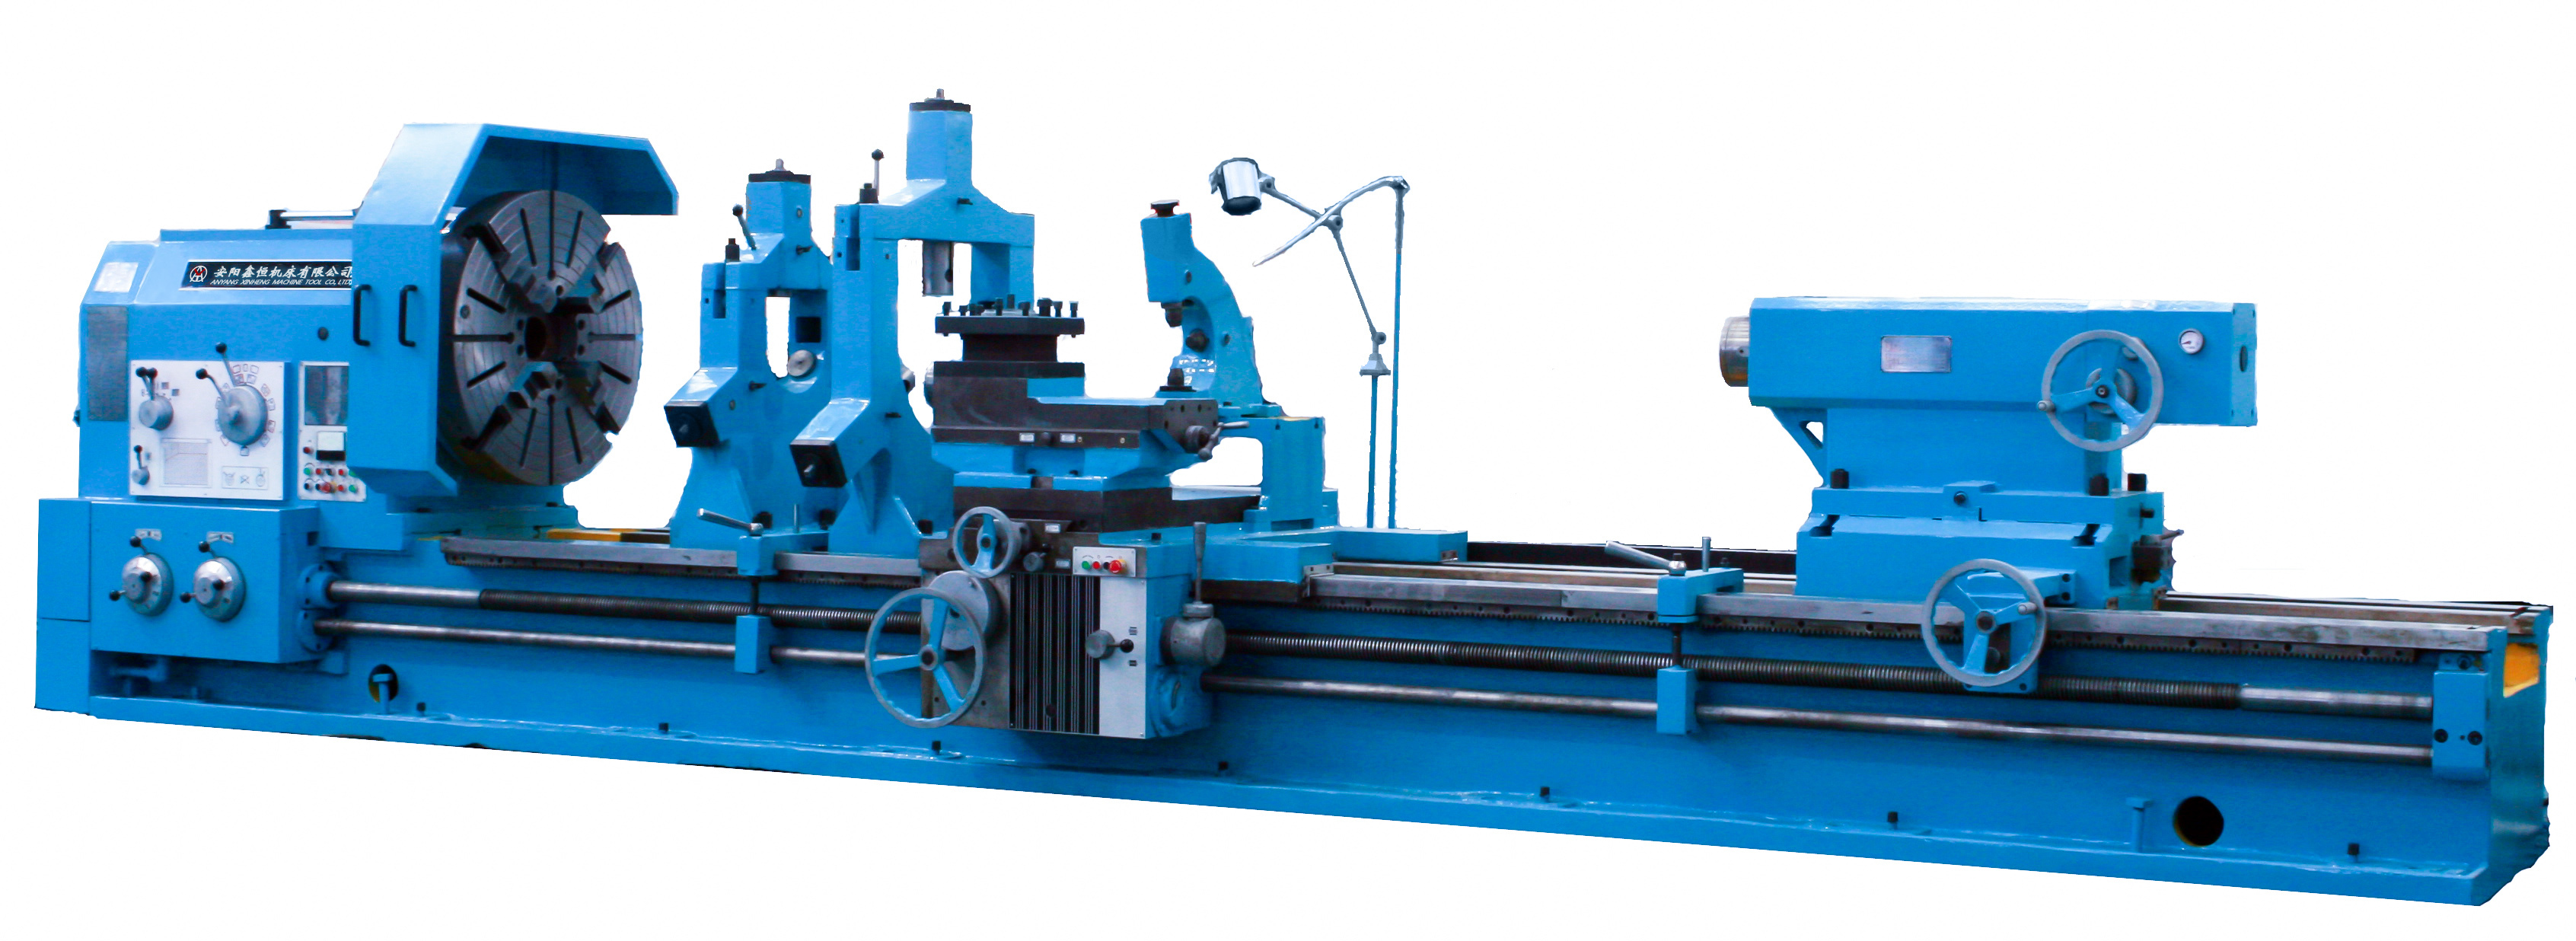 Spindle Bore 130 Heavy Duty Torno Machine with max.weight of workpiece 32t